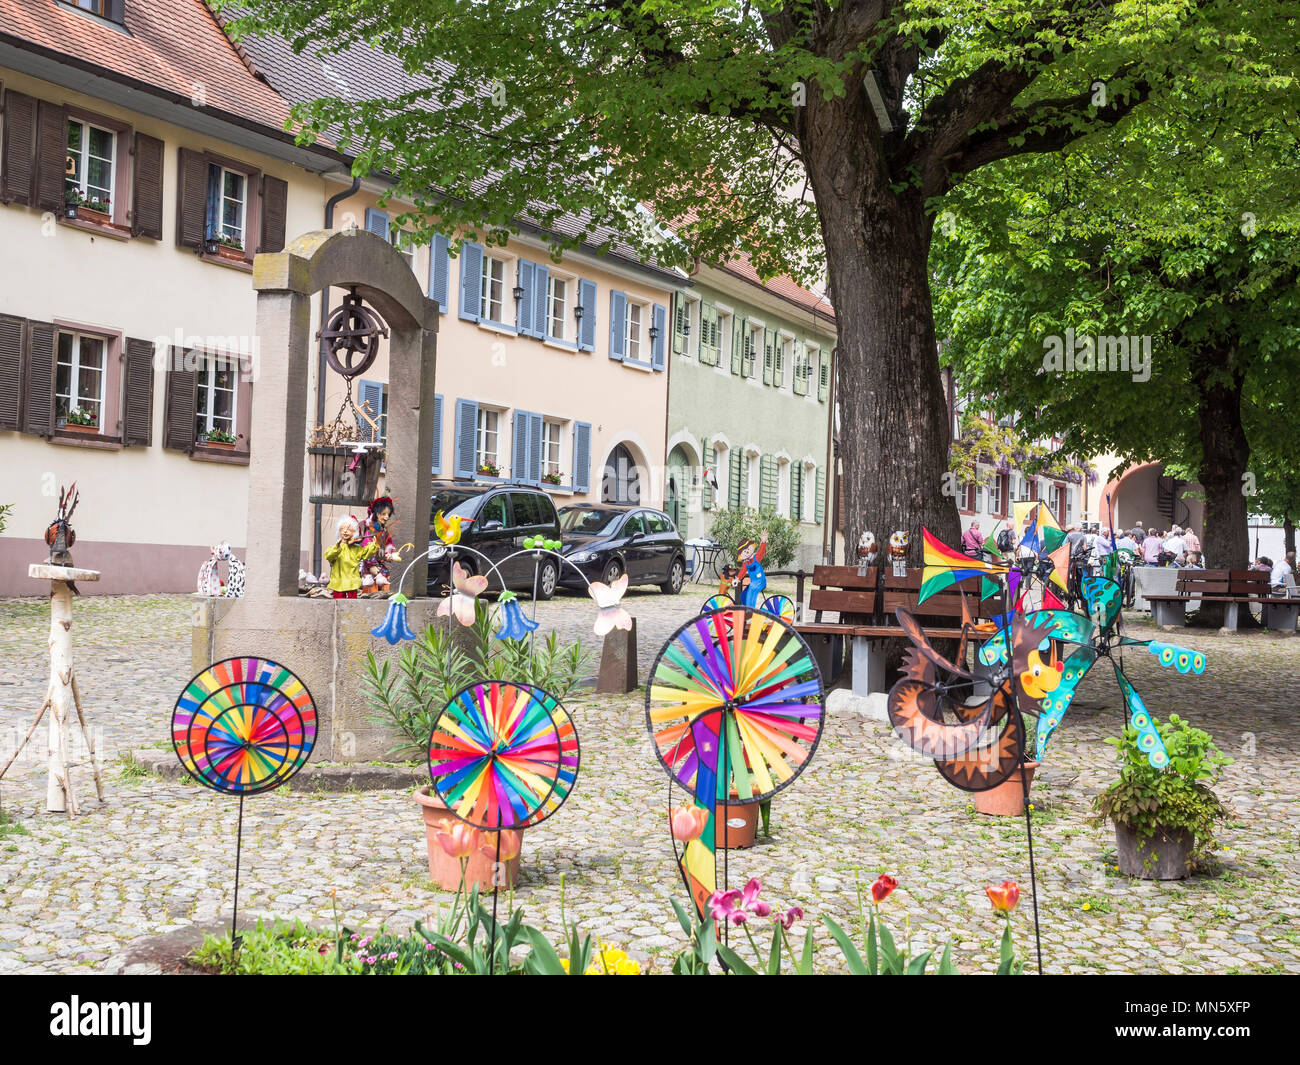 Village Burkheim near Freiburg, Breisgau, Baden-Würtemberg, Germany Stock Photo